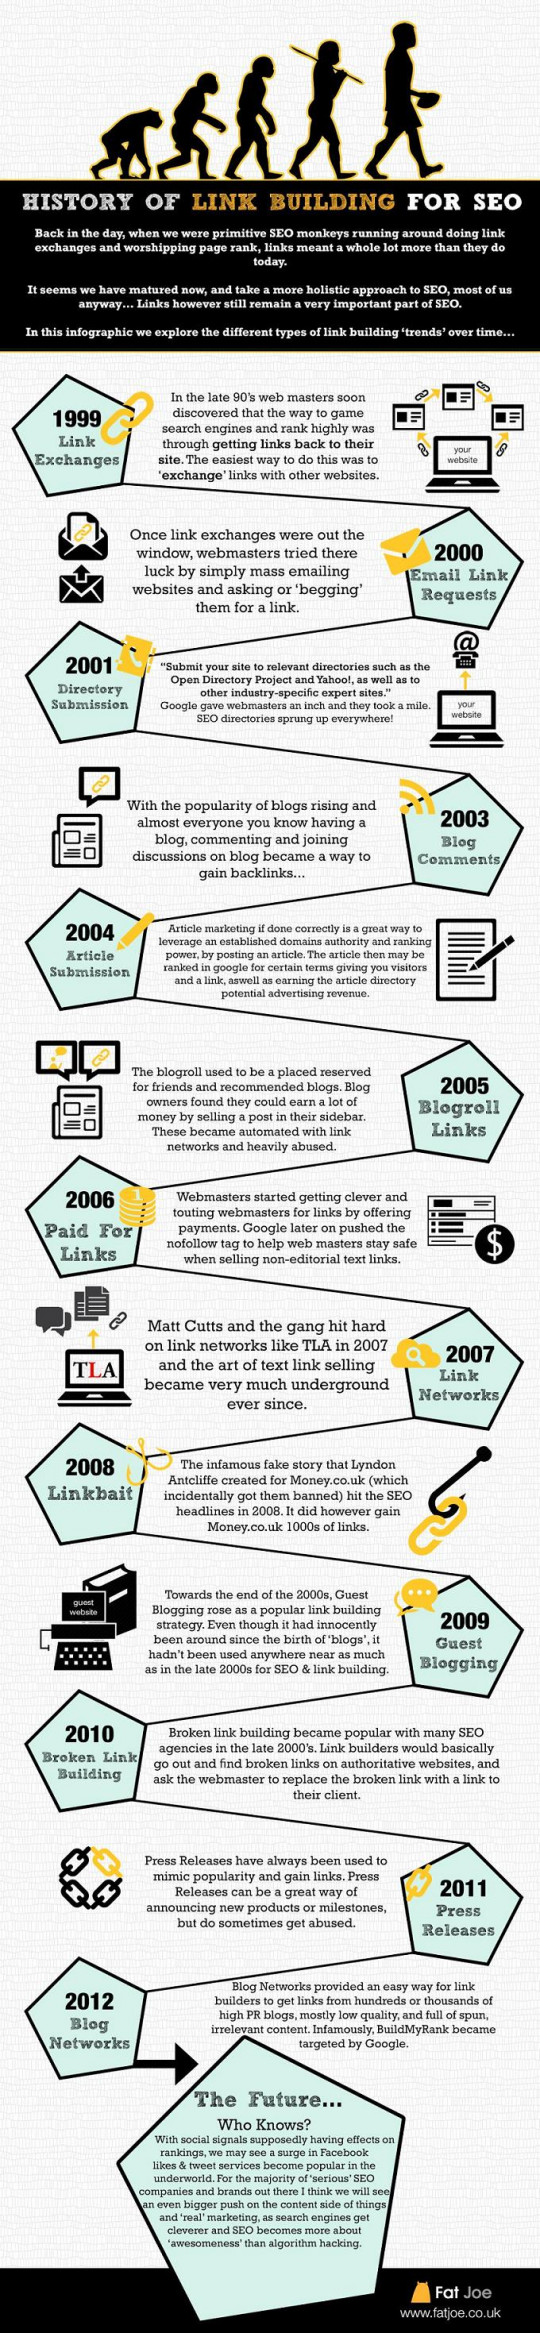 History of Link Building for SEO